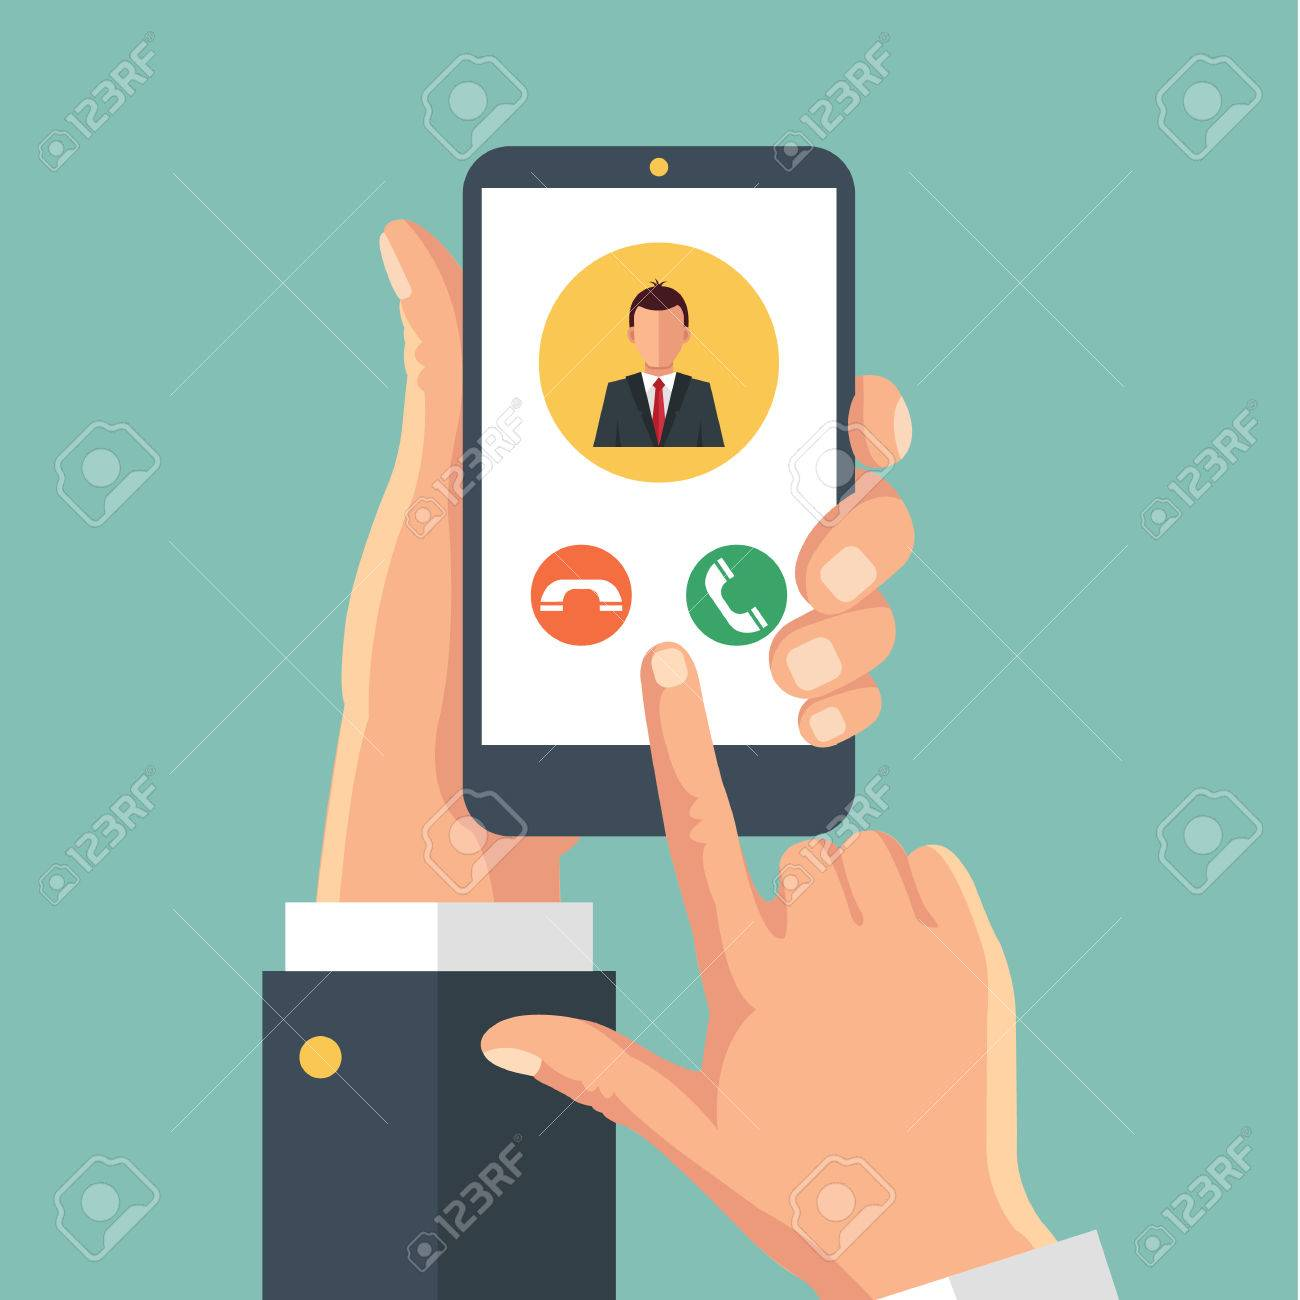 Incoming call on smartphone screen. Vector flat illustration - 52648596